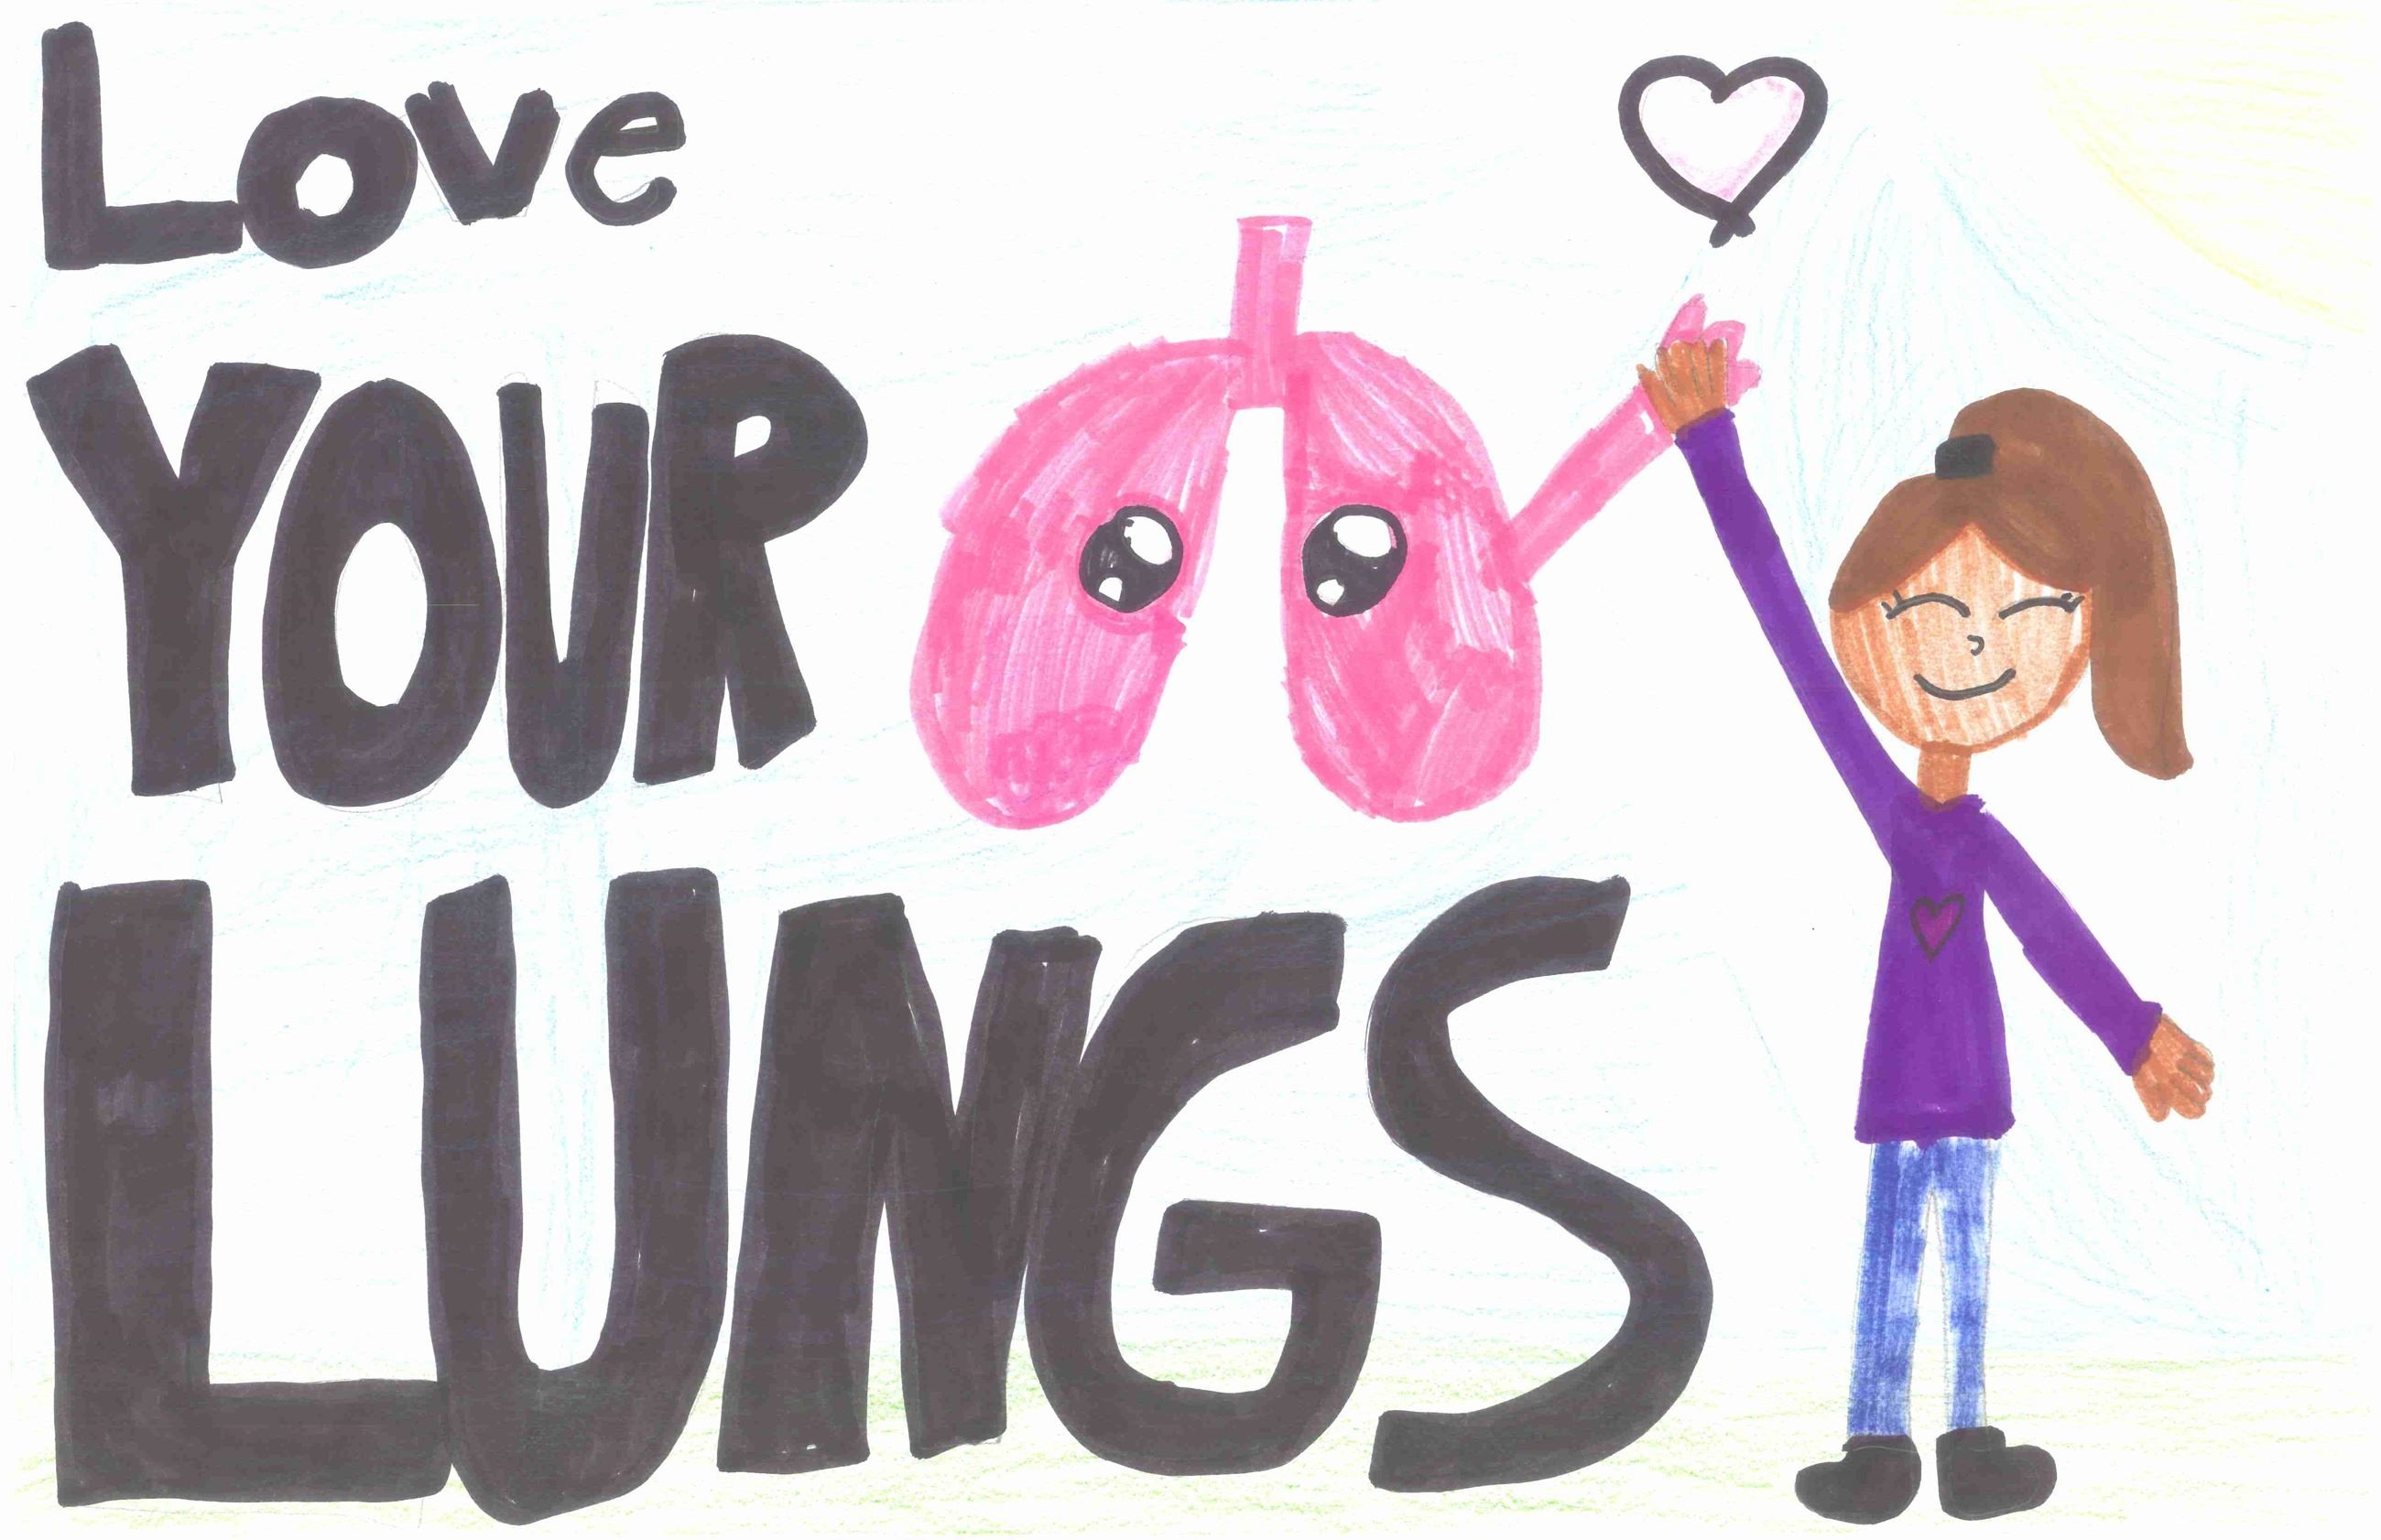 Hand drawn picture of a girl high-fiving a set of lungs